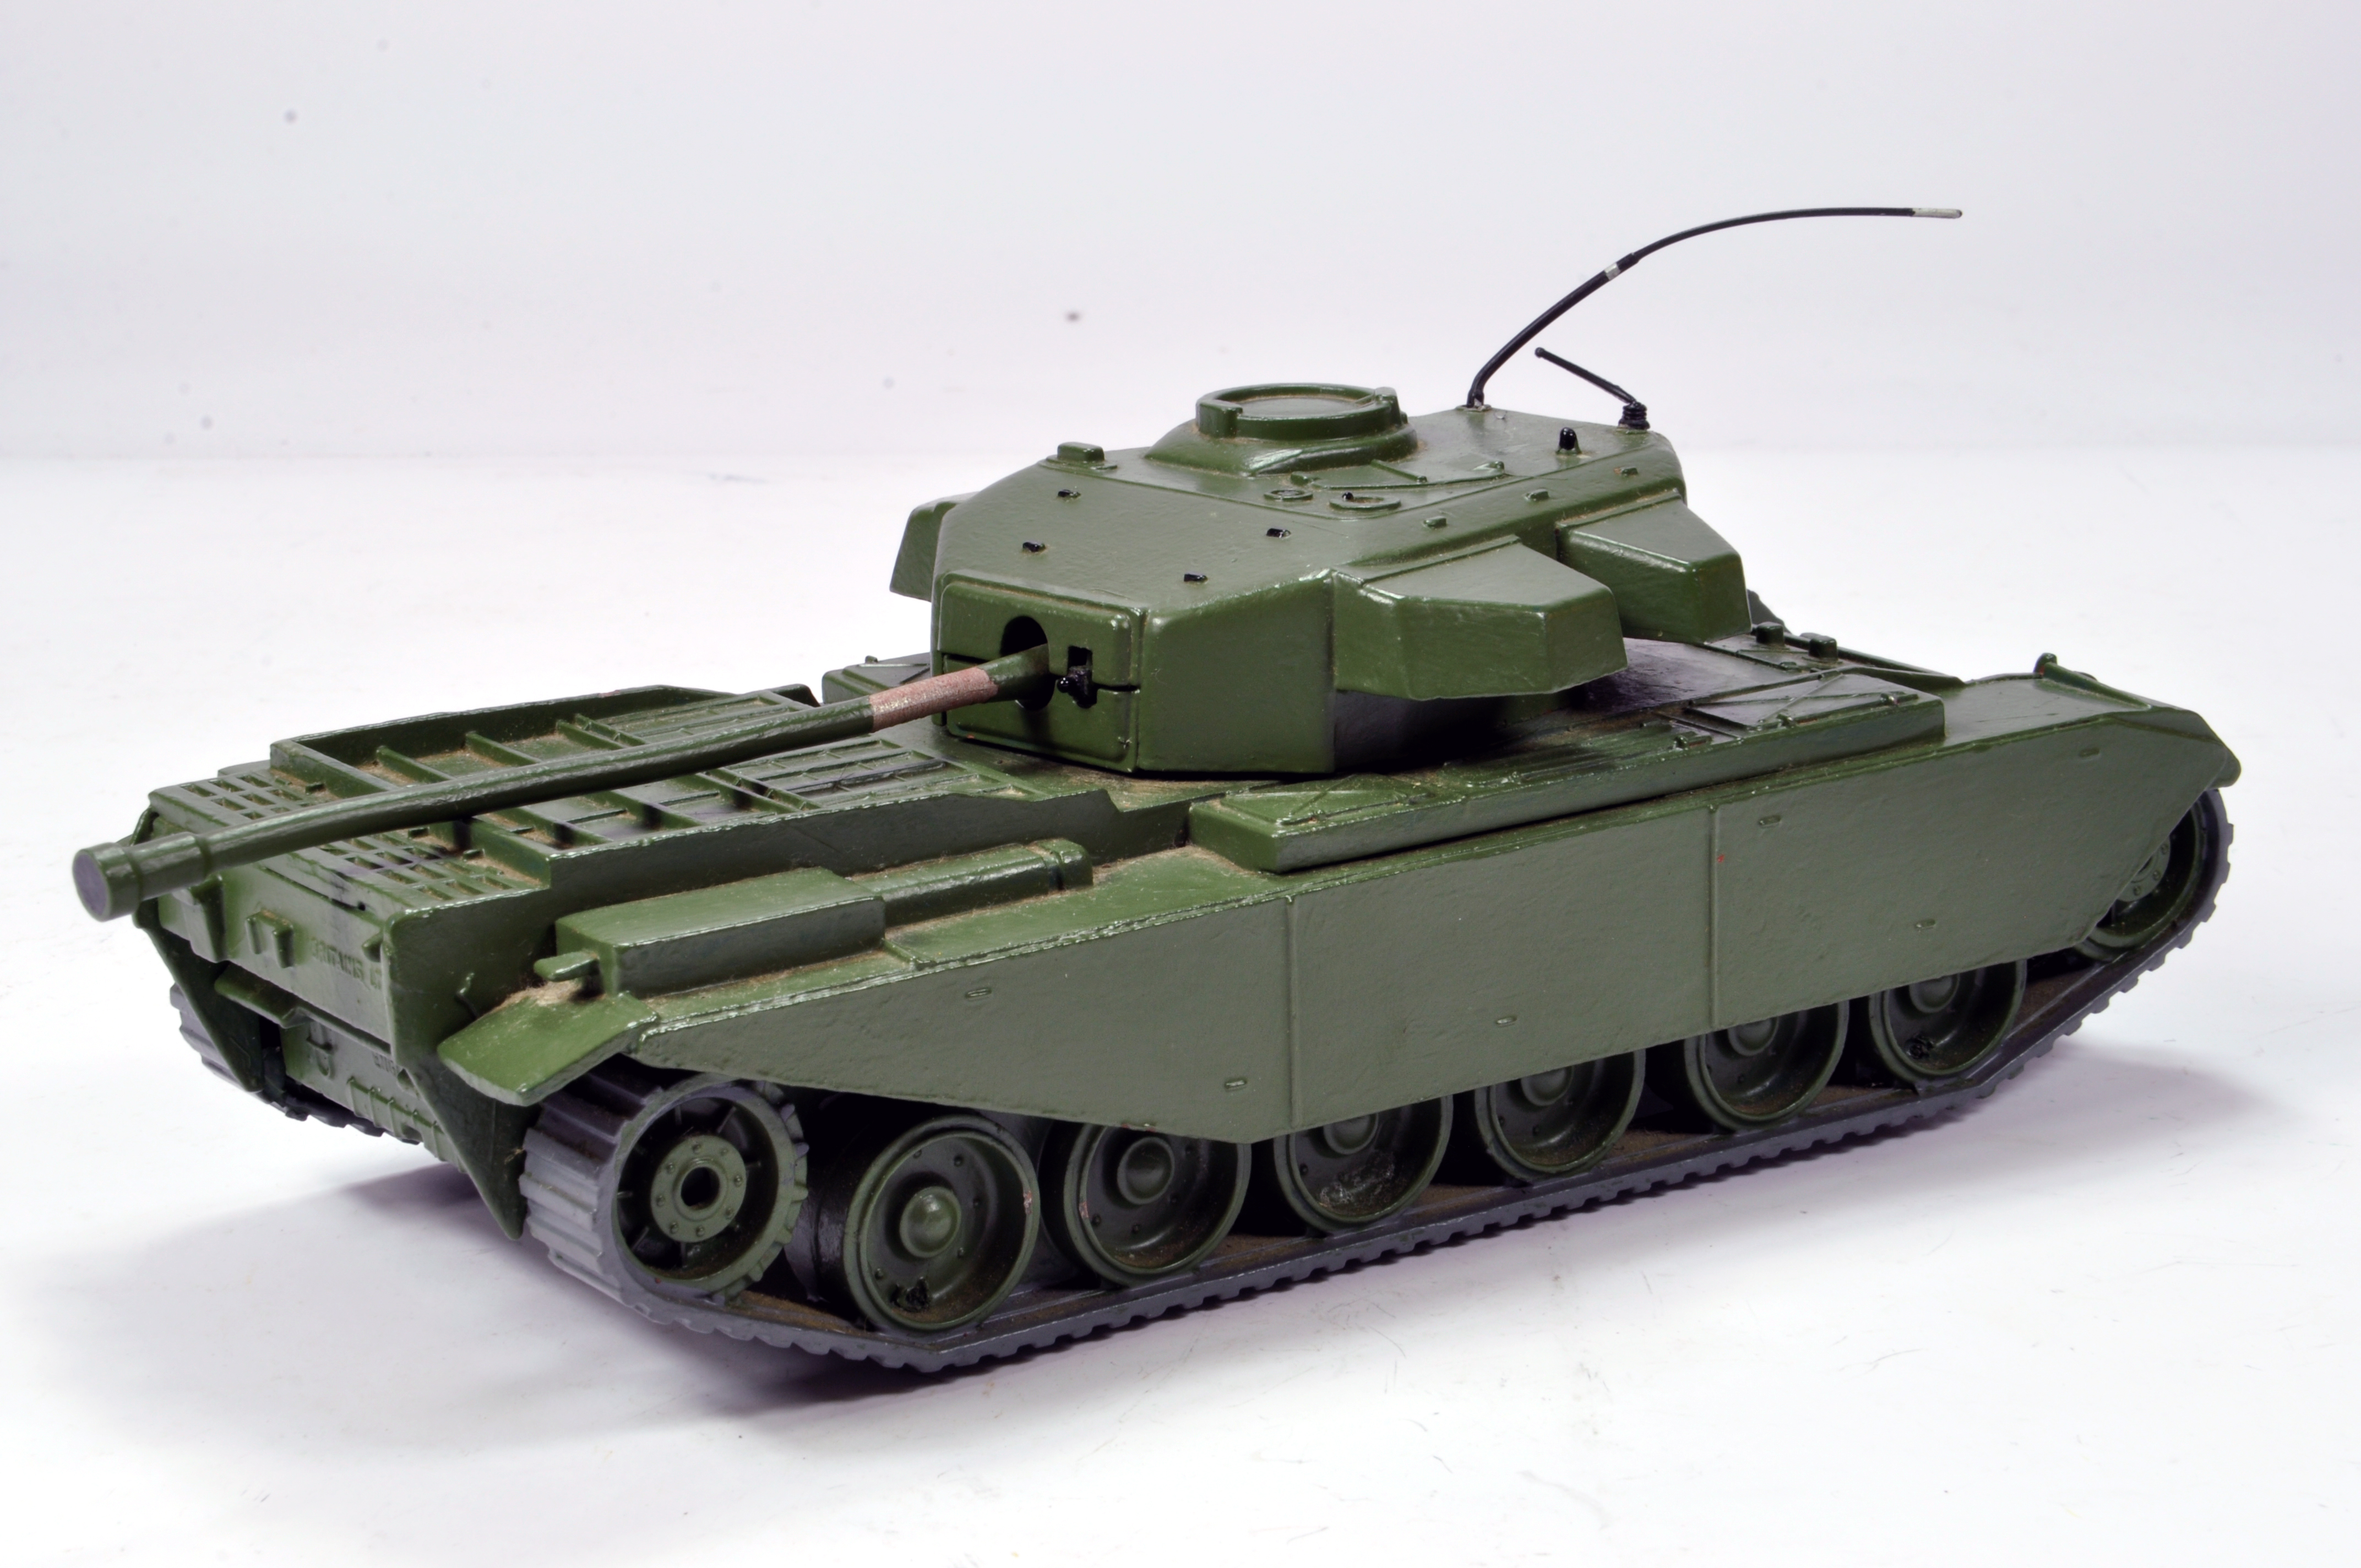 Lot 967 - Britains No. 2150 Centurion Tank. An impressive model that although lacks decal, displays well and